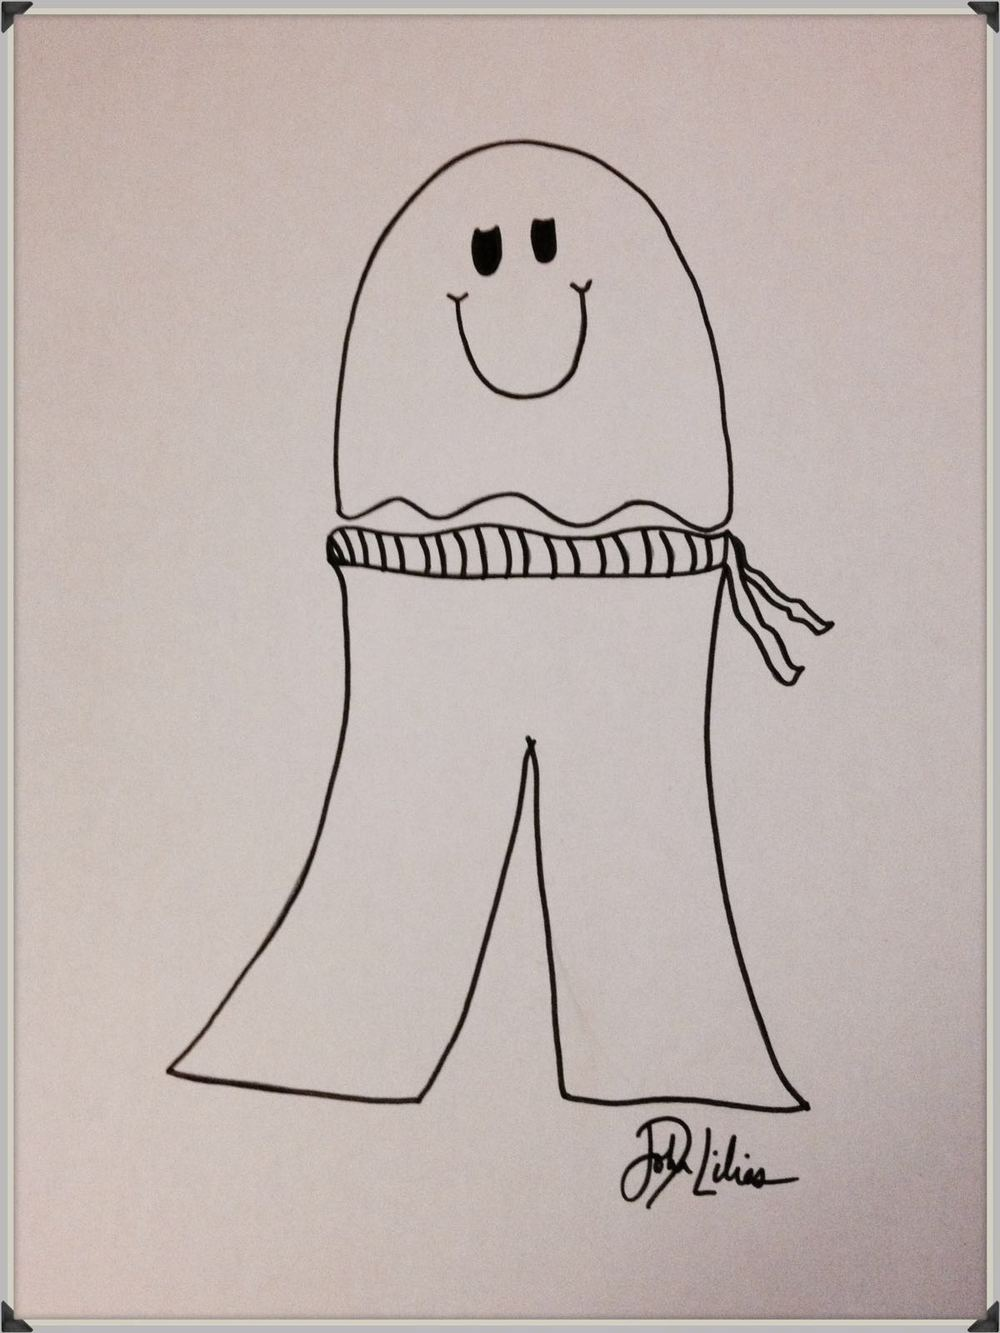 *Illustration may not be an accurate representation of the real ghosty